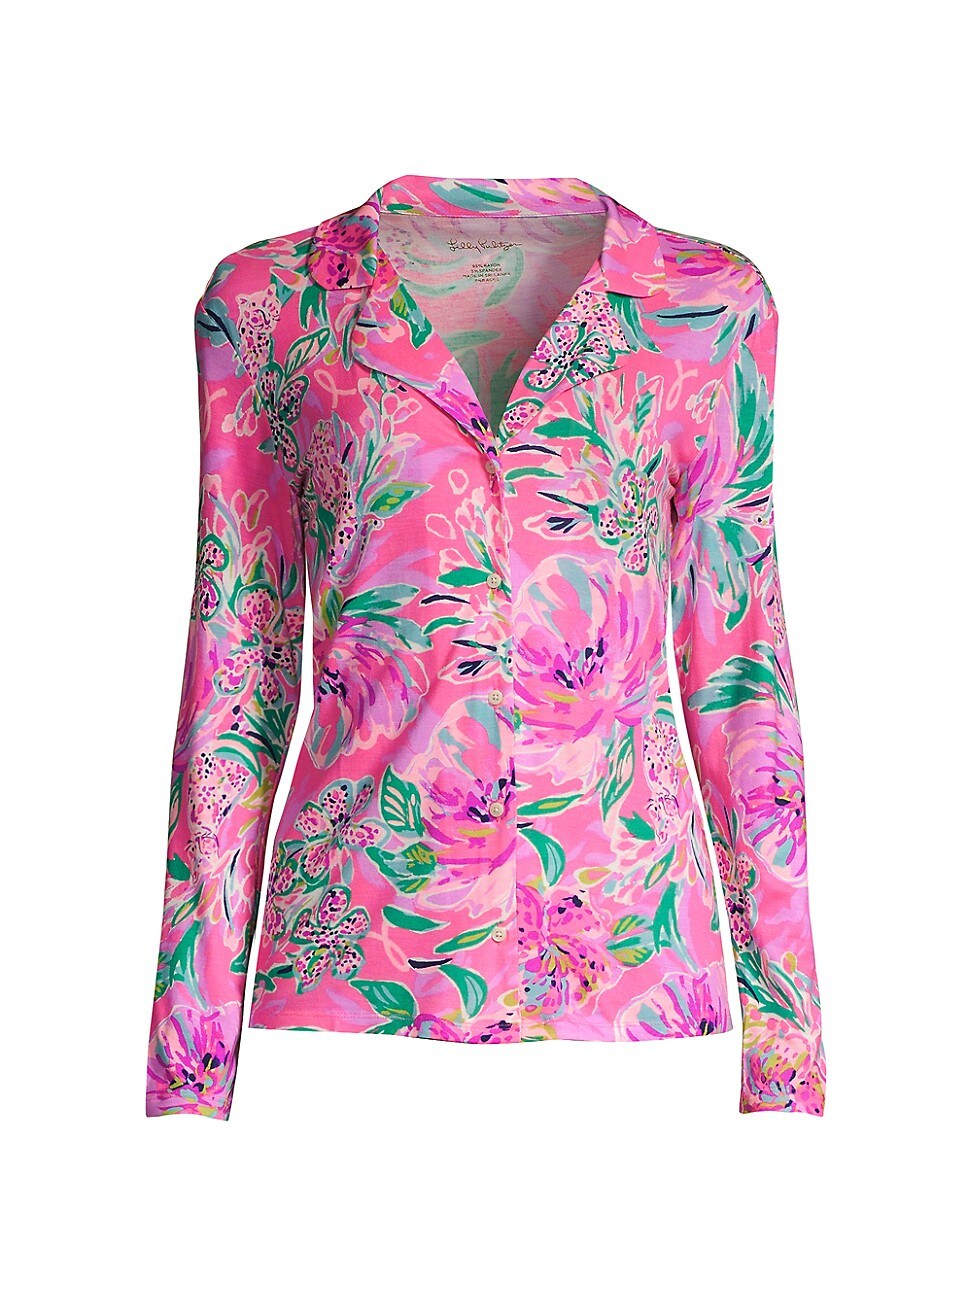 Lilly Pulitzer WOMEN'S FLORAL-PRINT KNIT PAJAMA TOP